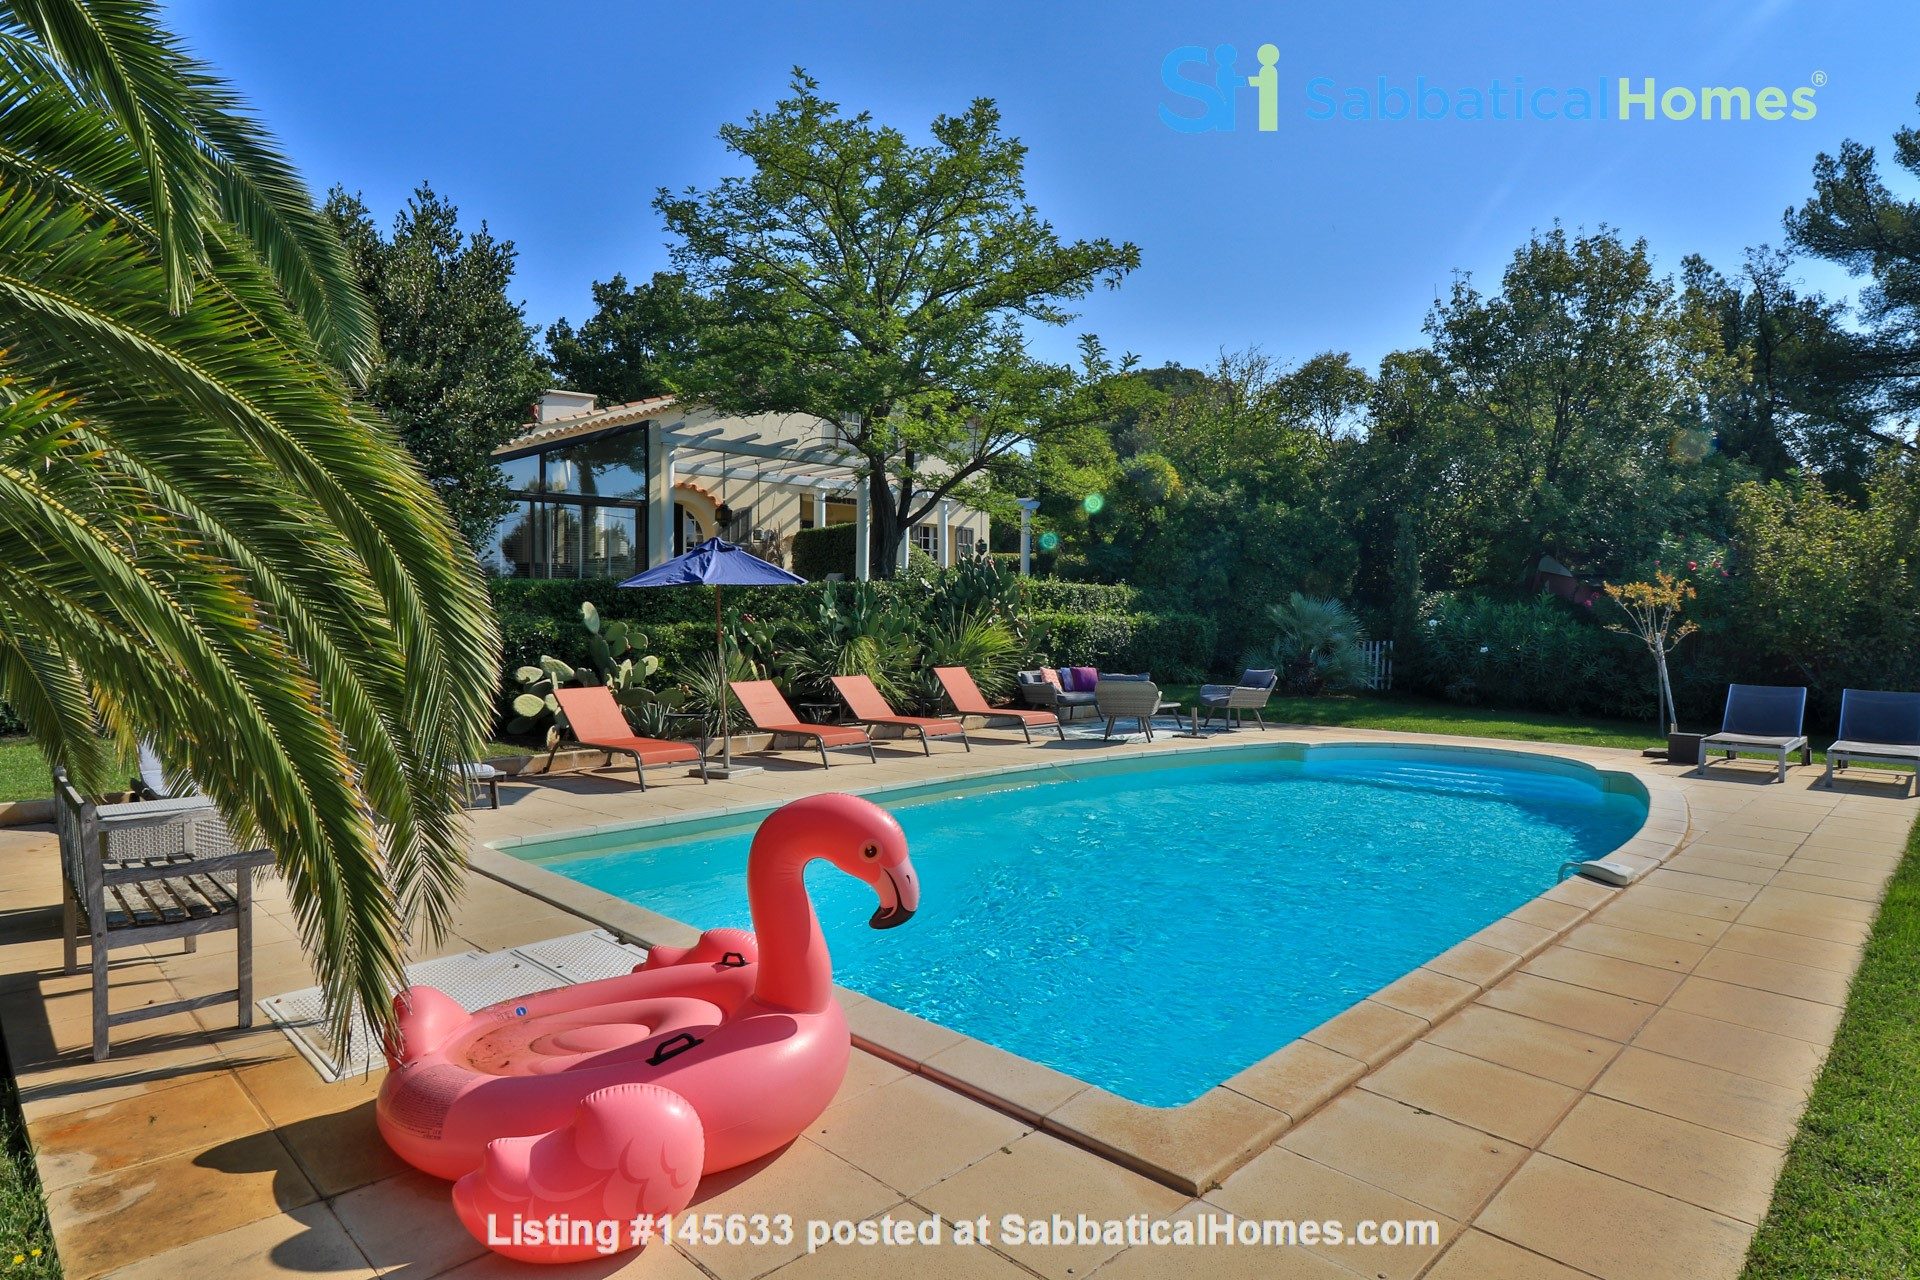 Your own bungalow in Provence - large garden and pool - close to city Home Exchange in La Garde, Provence-Alpes-Côte d'Azur, France 0